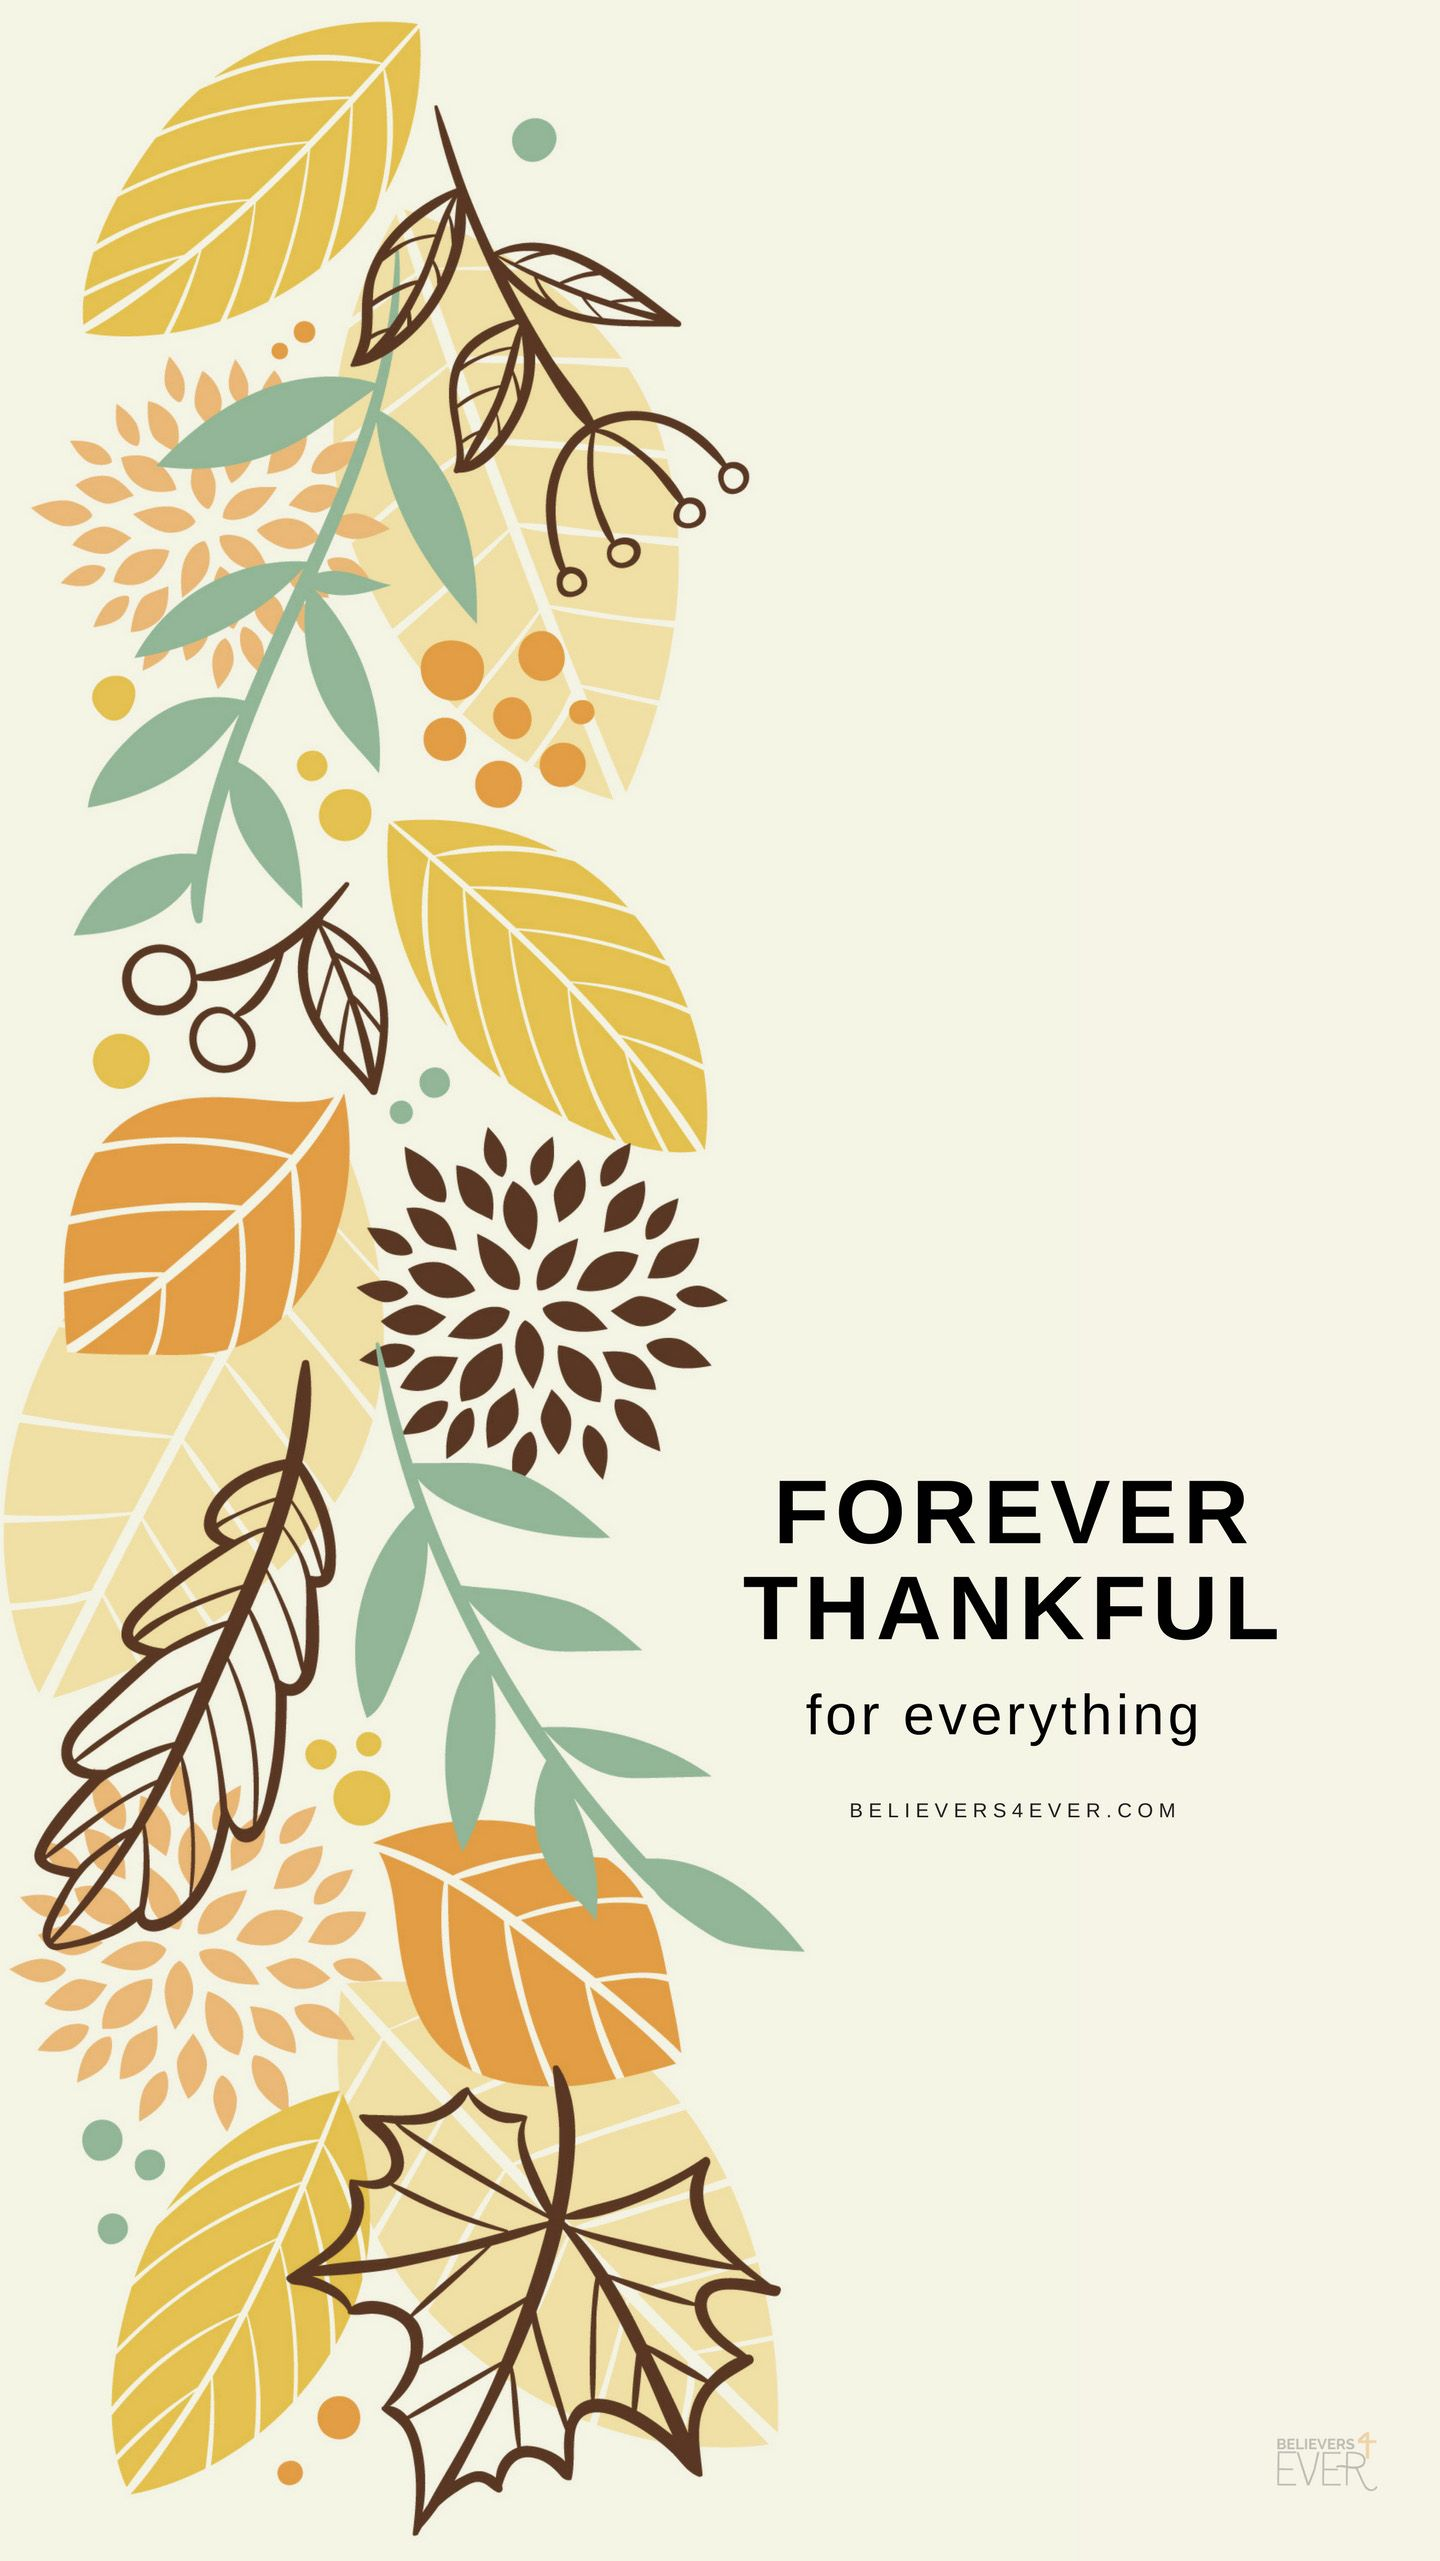 Forever Thankful Thanksgiving Wallpaper Iphone Wallpaper Fall